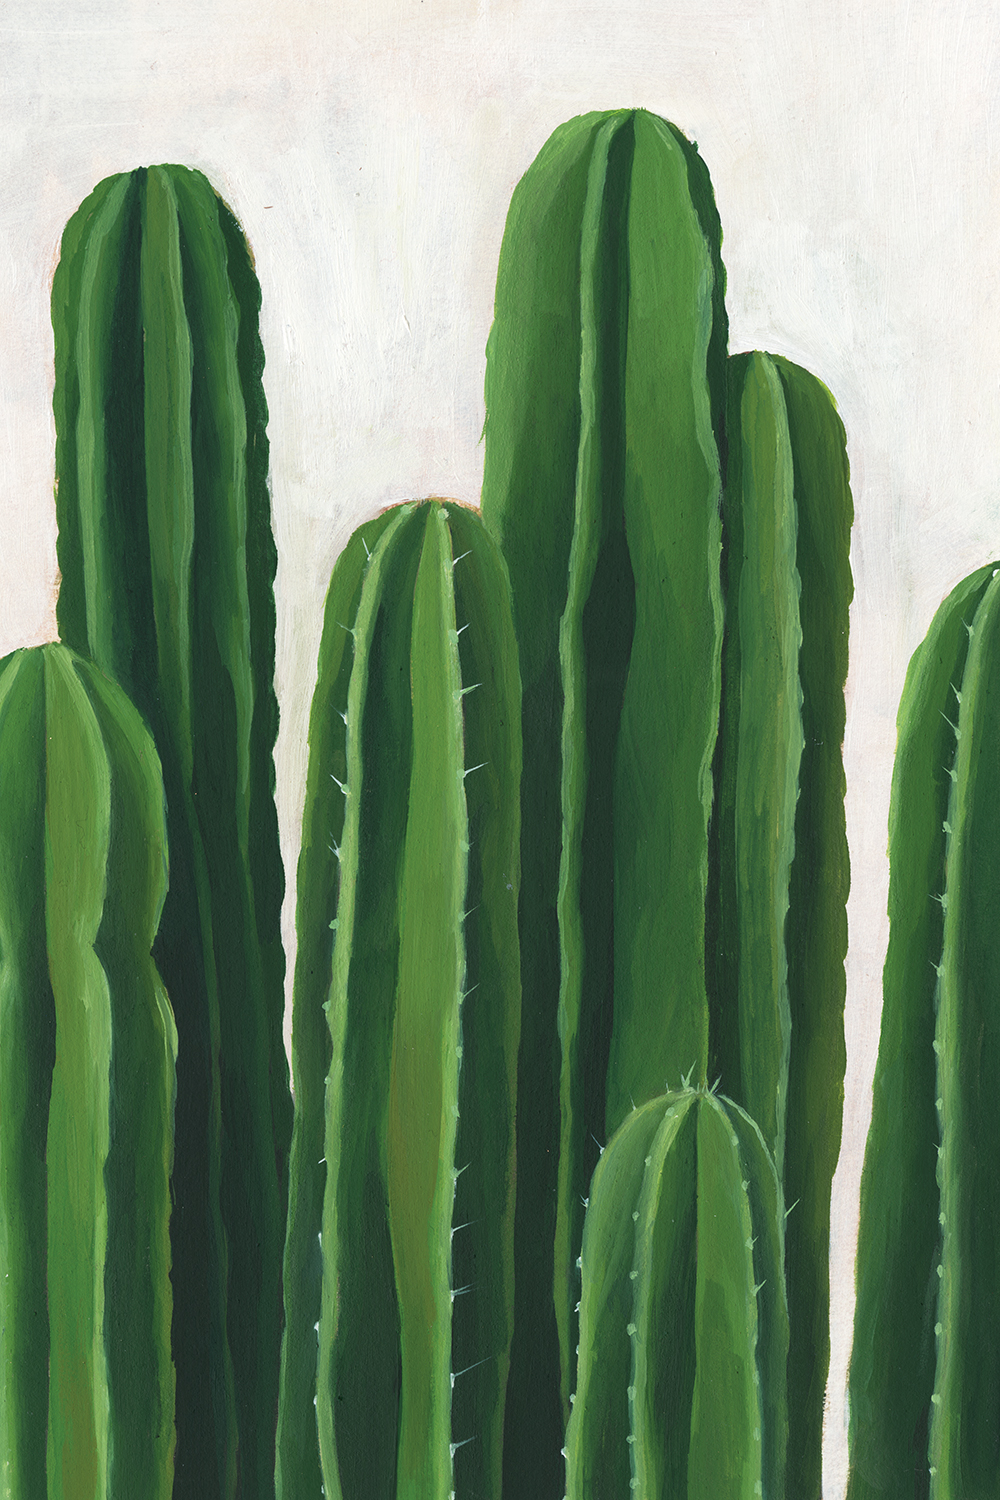 Image of seven green cacti clustered together on a white background